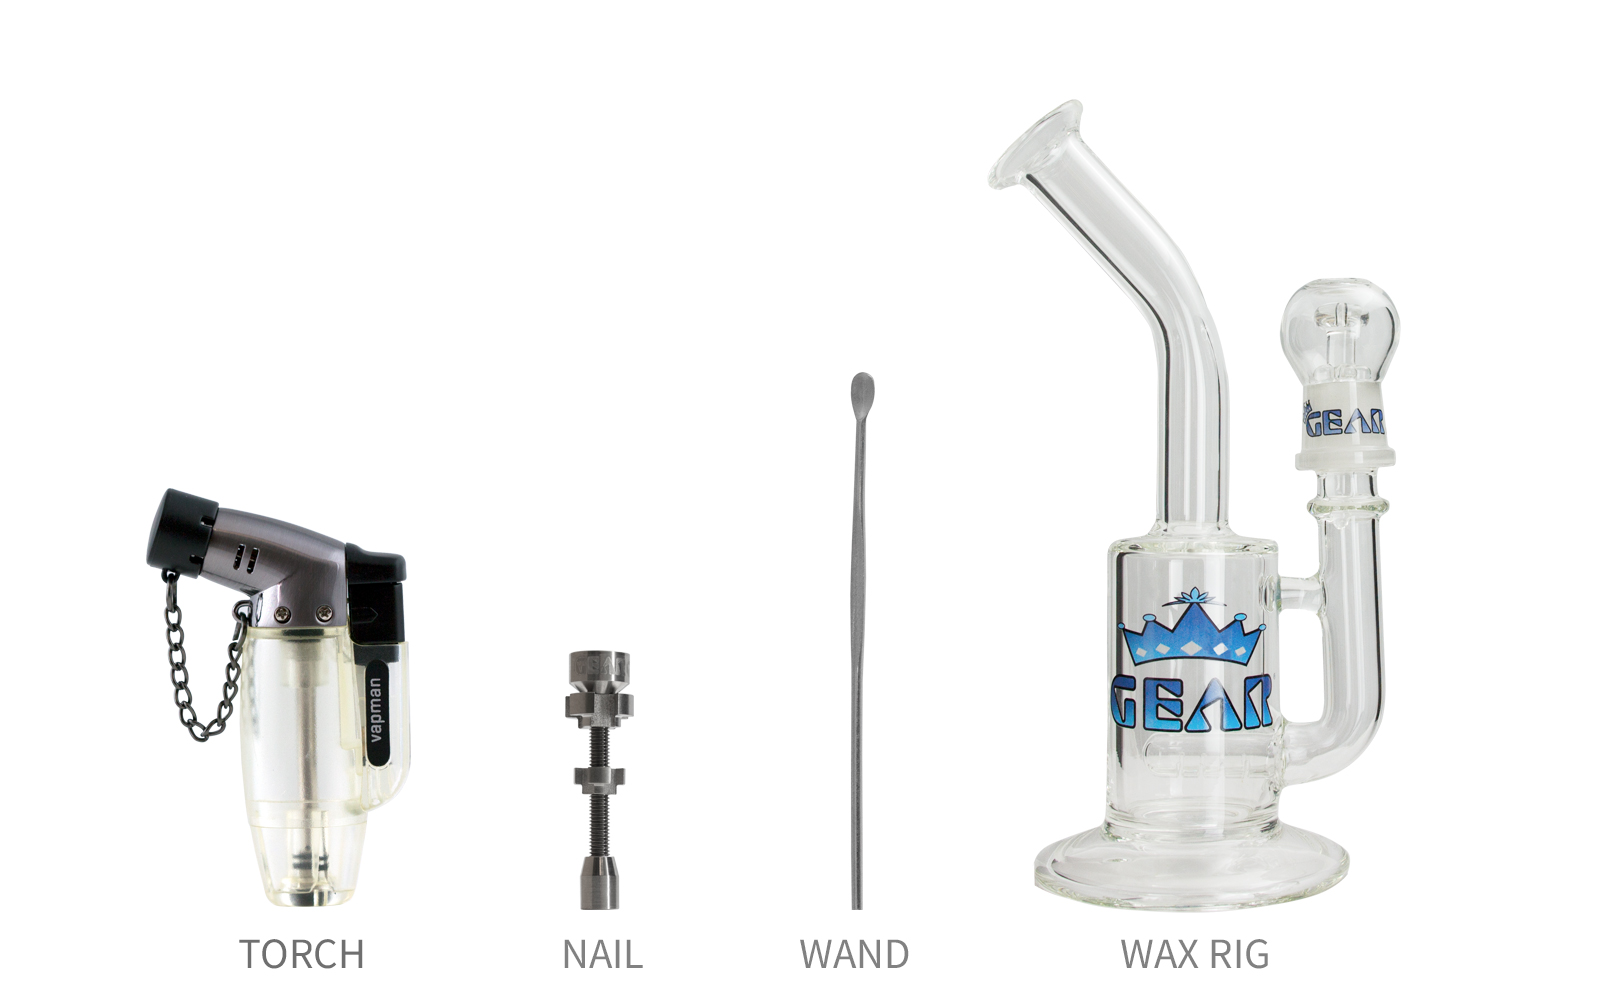 Wax Pens Buyers Guide - An Introduction to Wax Vaporizers